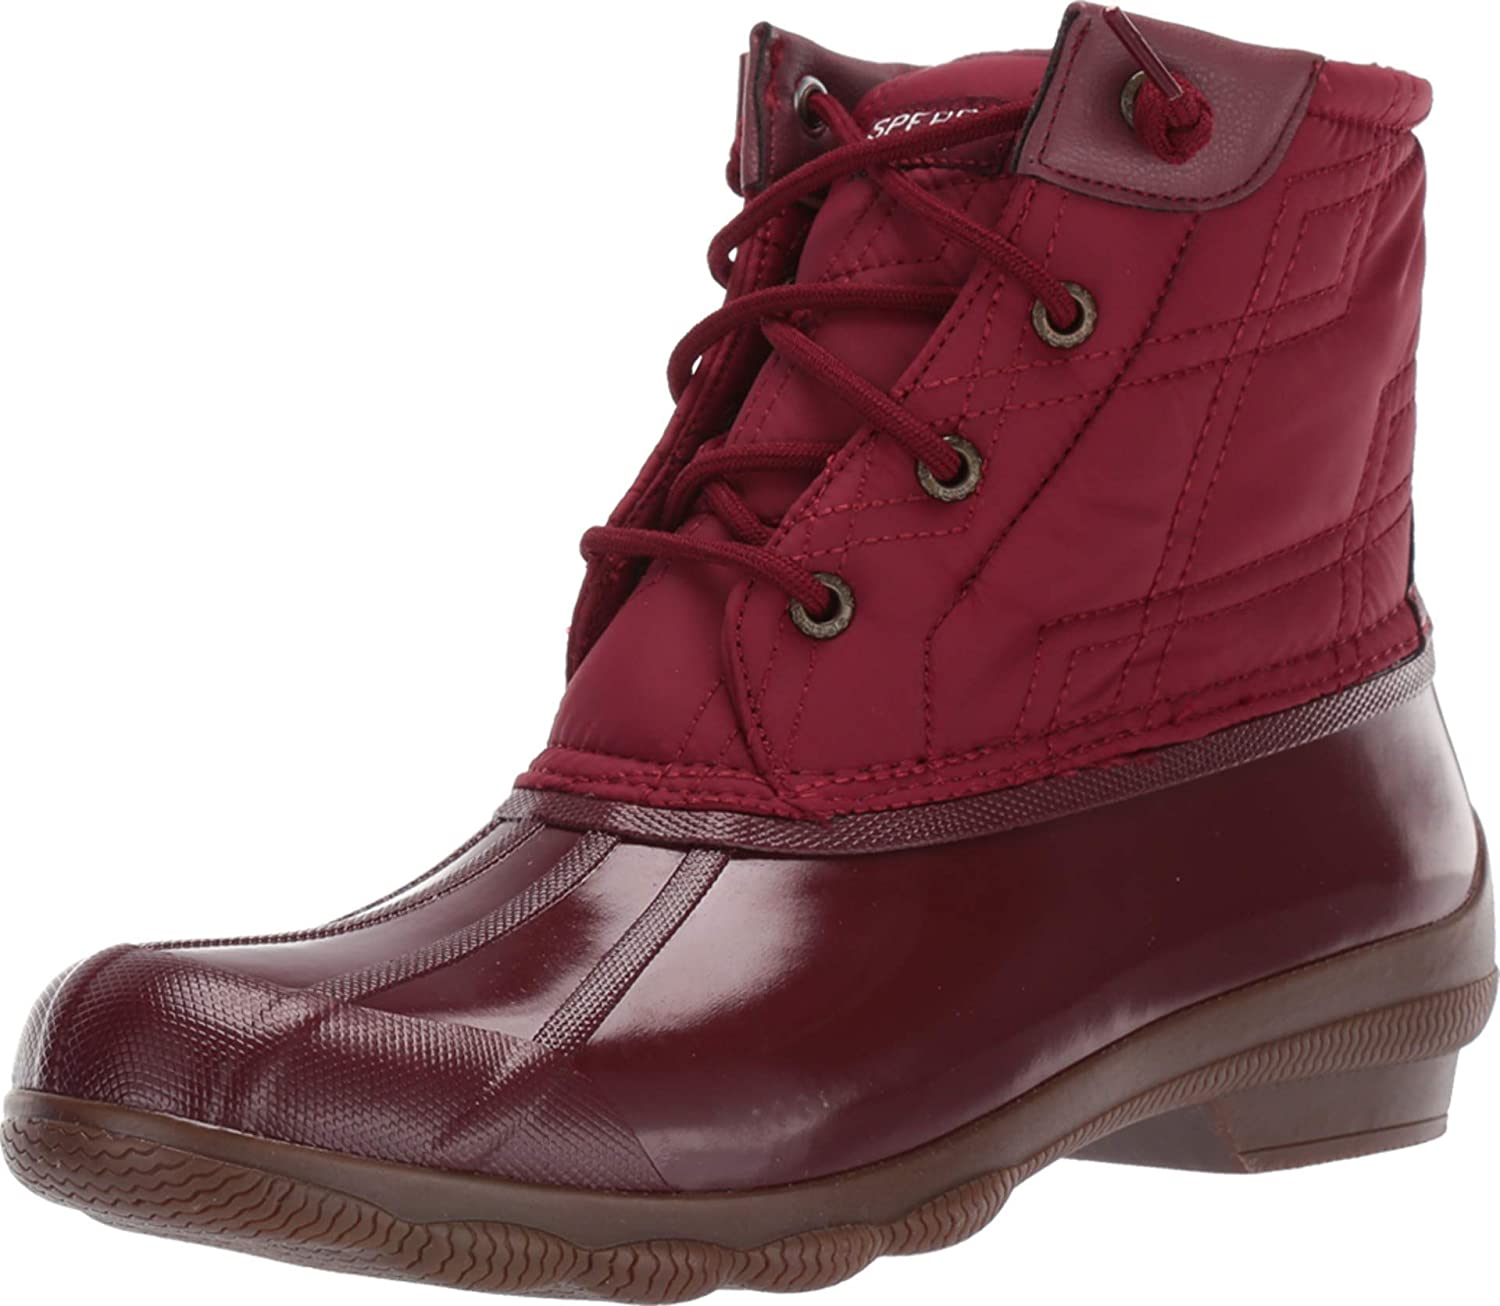 Sperry Syren Gulf Quilted Nylon Oxblood